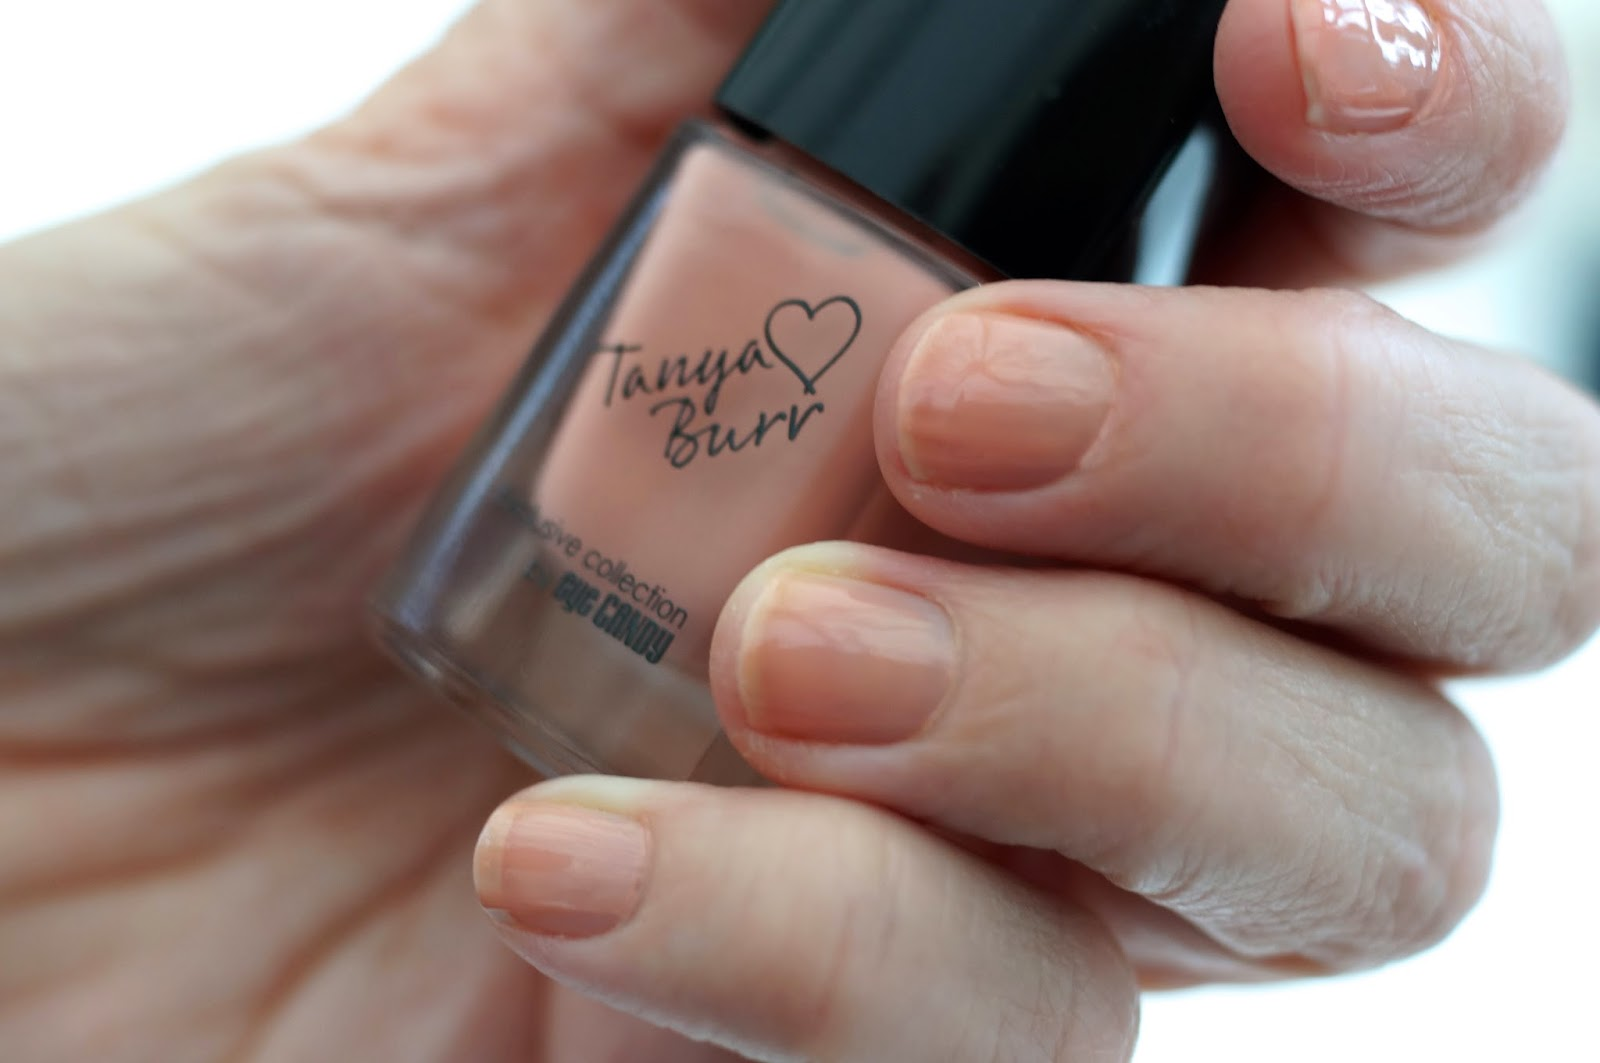 tanya burr nail varnish just peachy